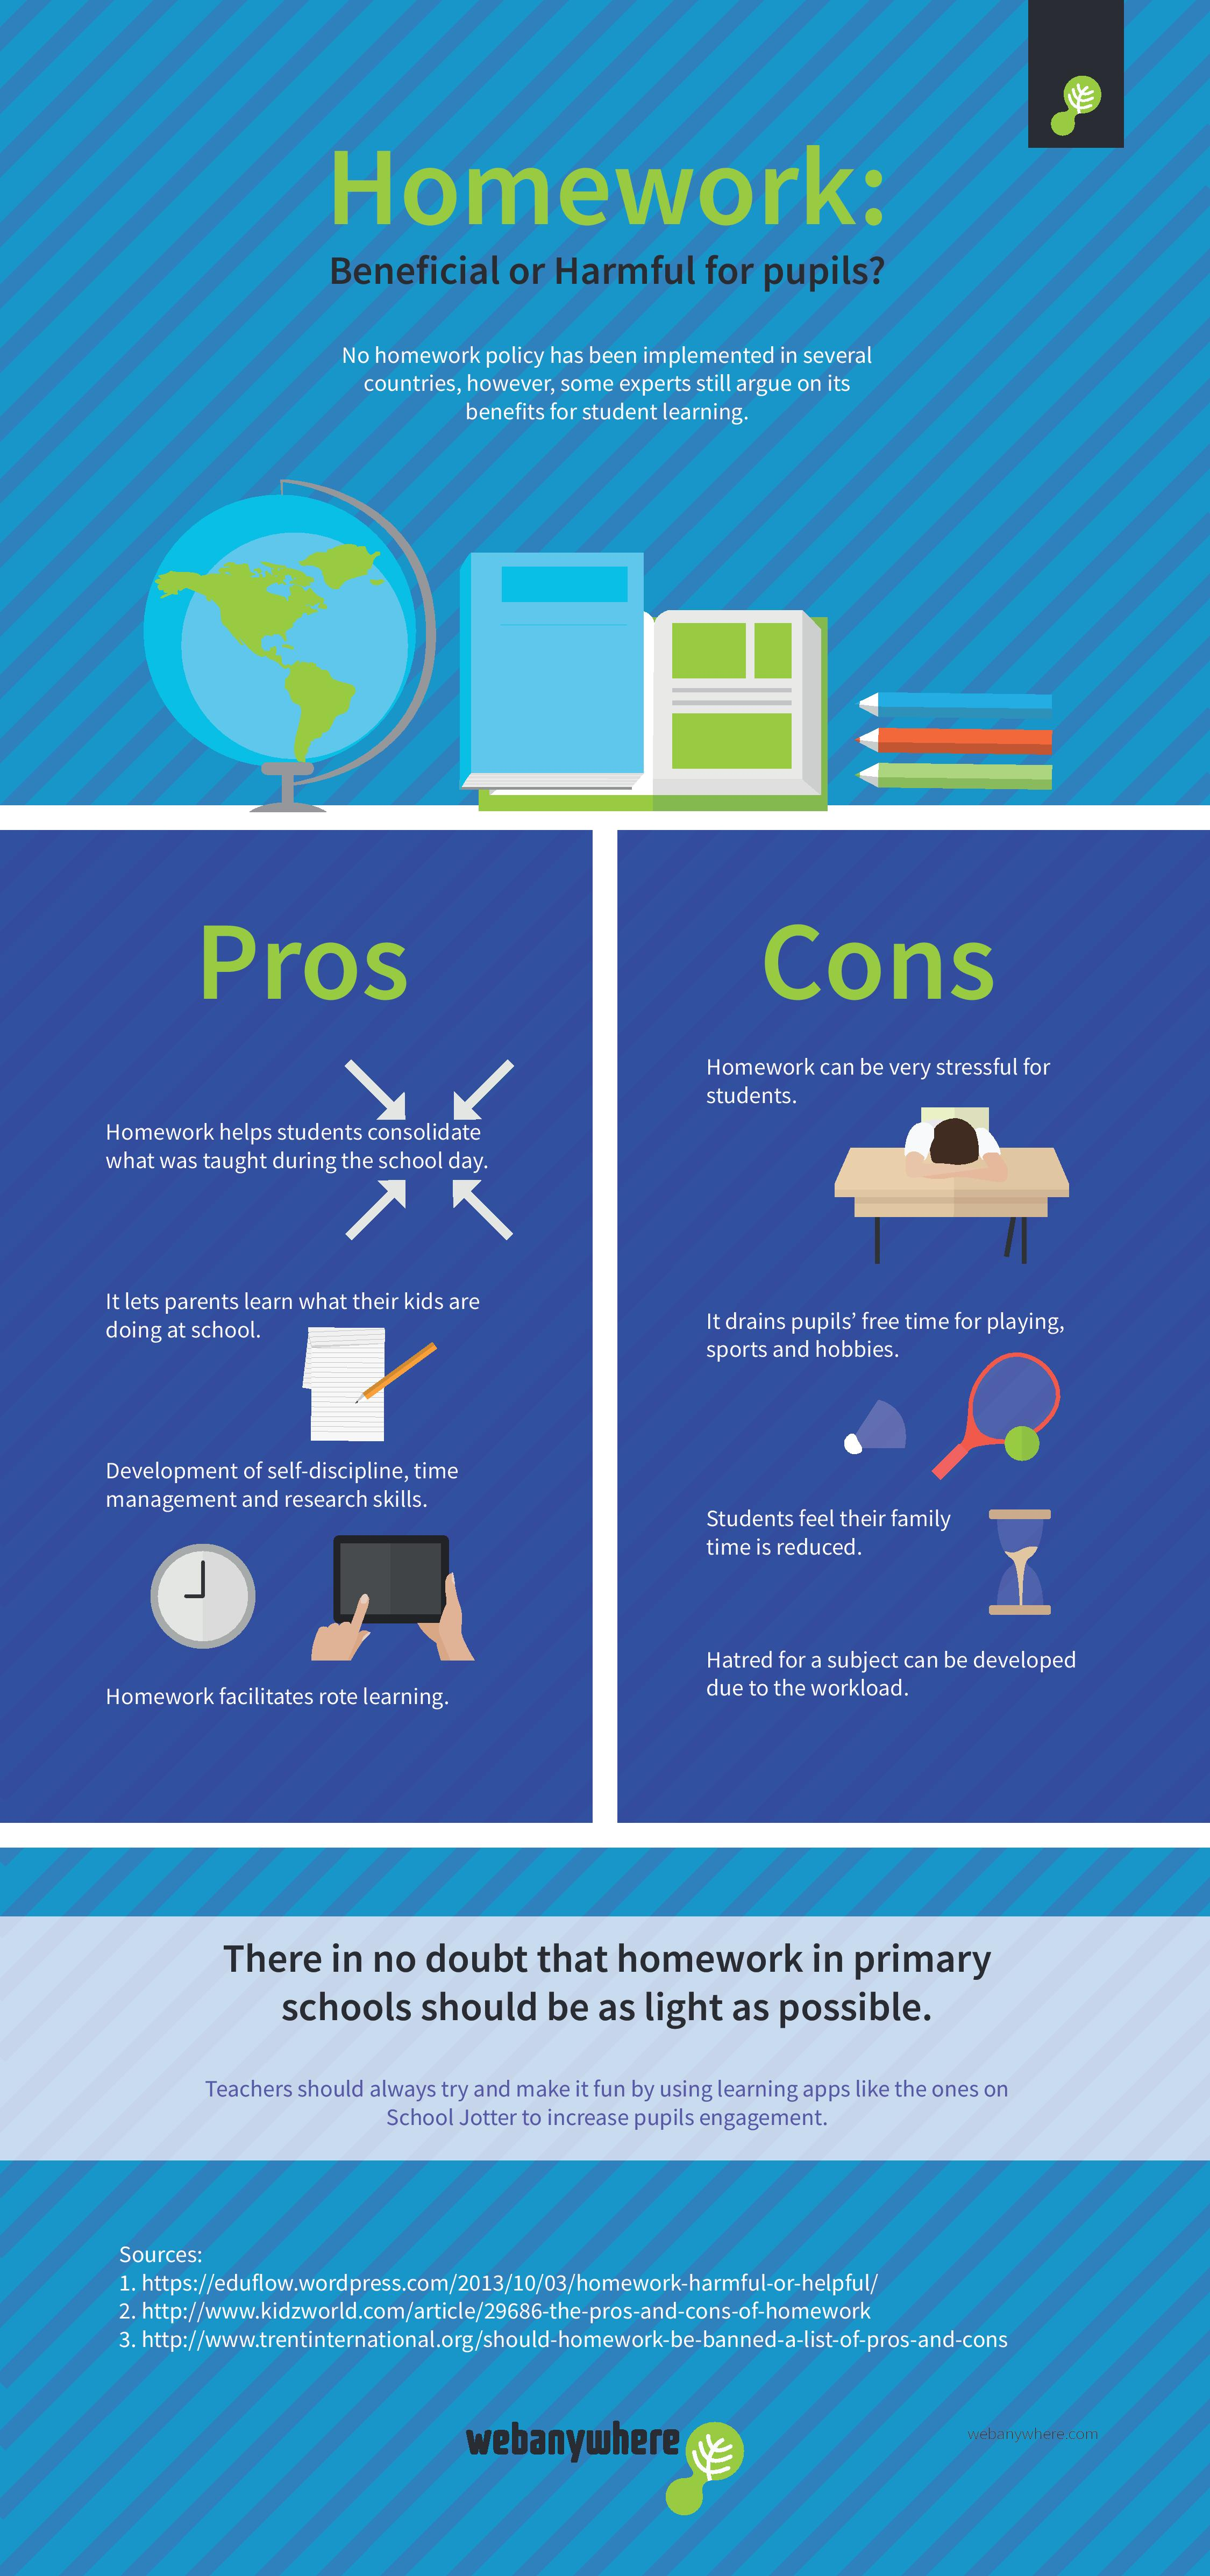 Homework Beneficial Or Harmful Infographic